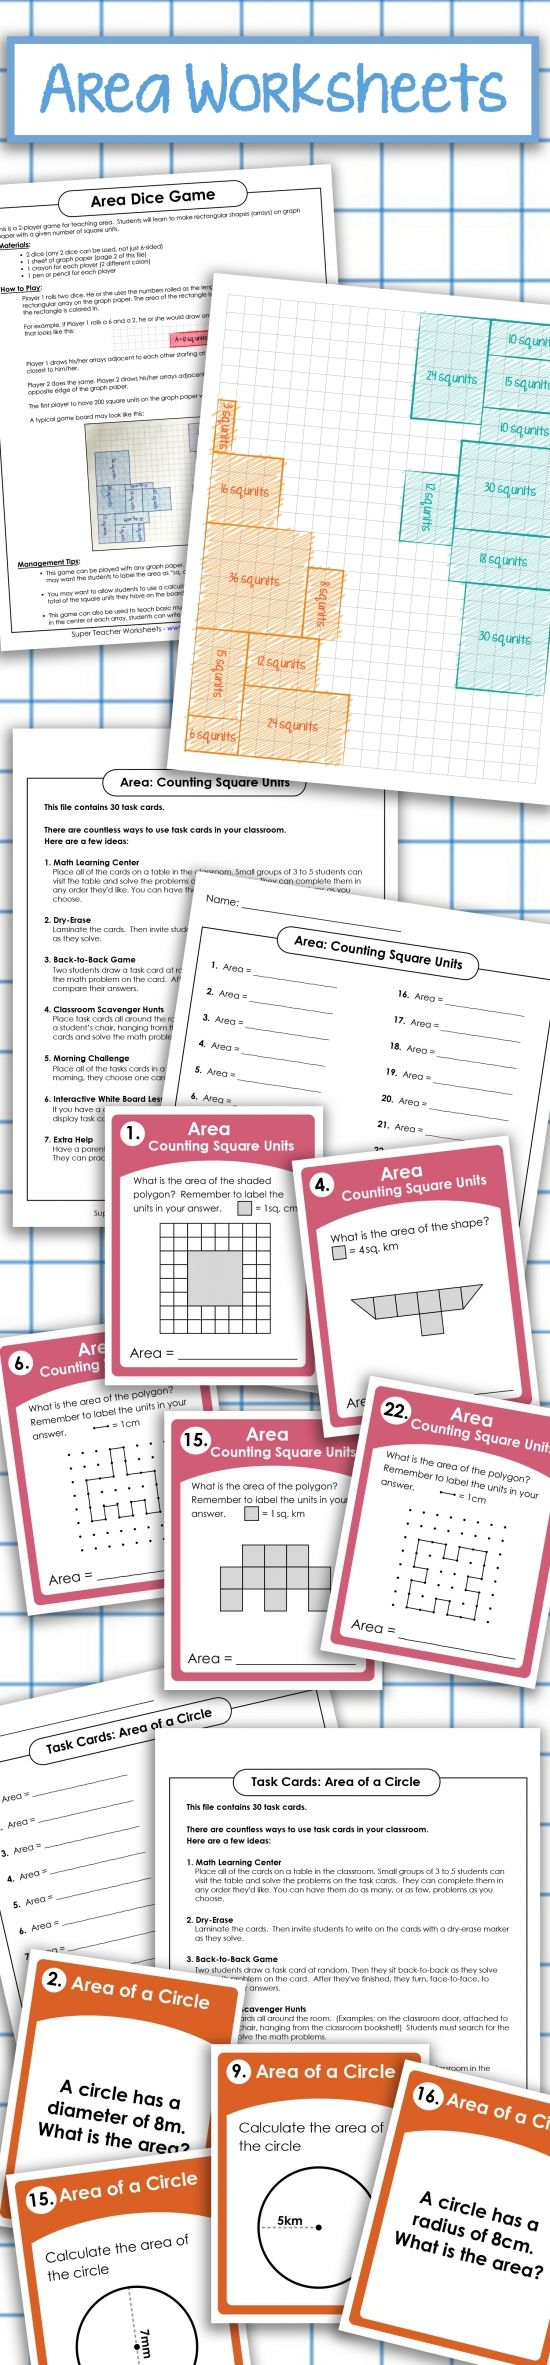 Print out area activities from #superteacherworksheets! Our printable #math resources include basic area, area of triangles, area of circles, area of rectangles and squares, area of parallelograms, surface area, and more!   Browse our #area worksheets today!